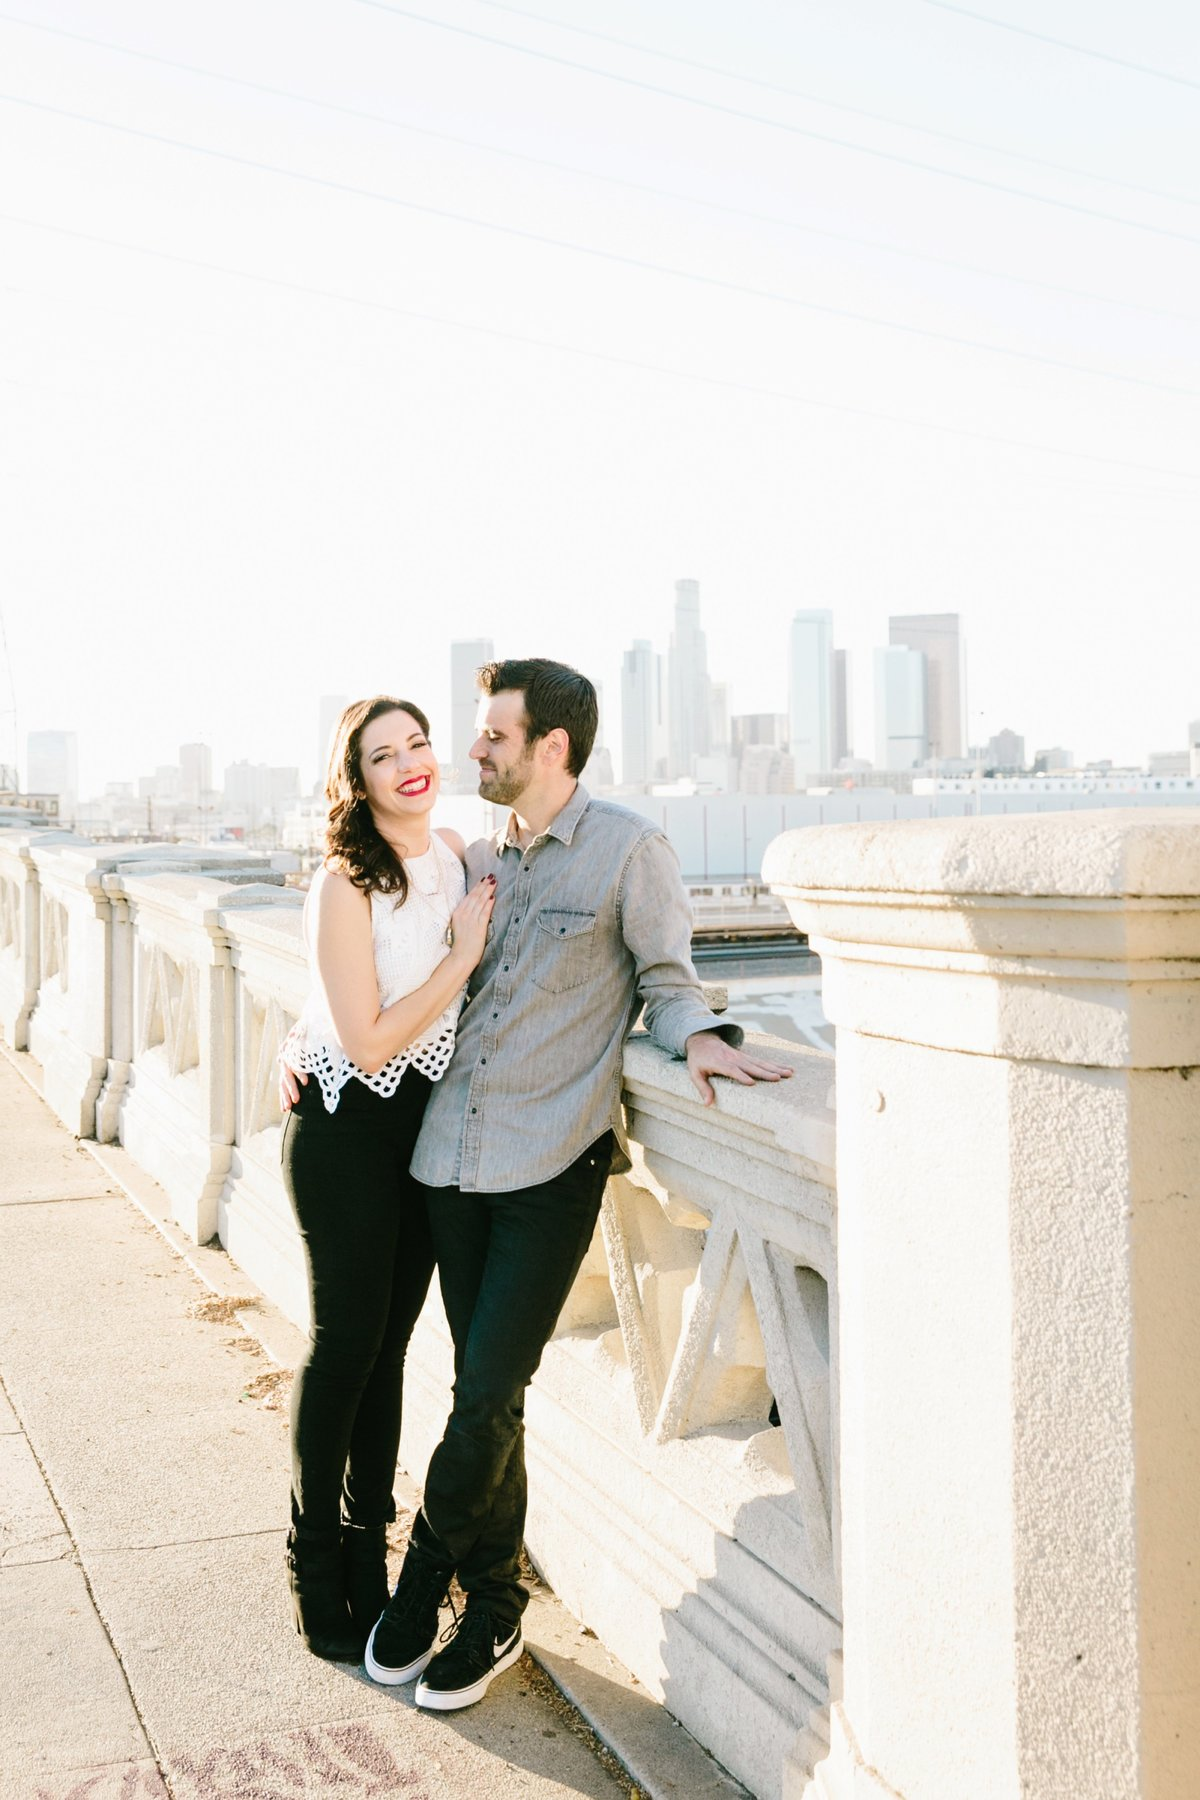 Engagement Photos-Jodee Debes Photography-159